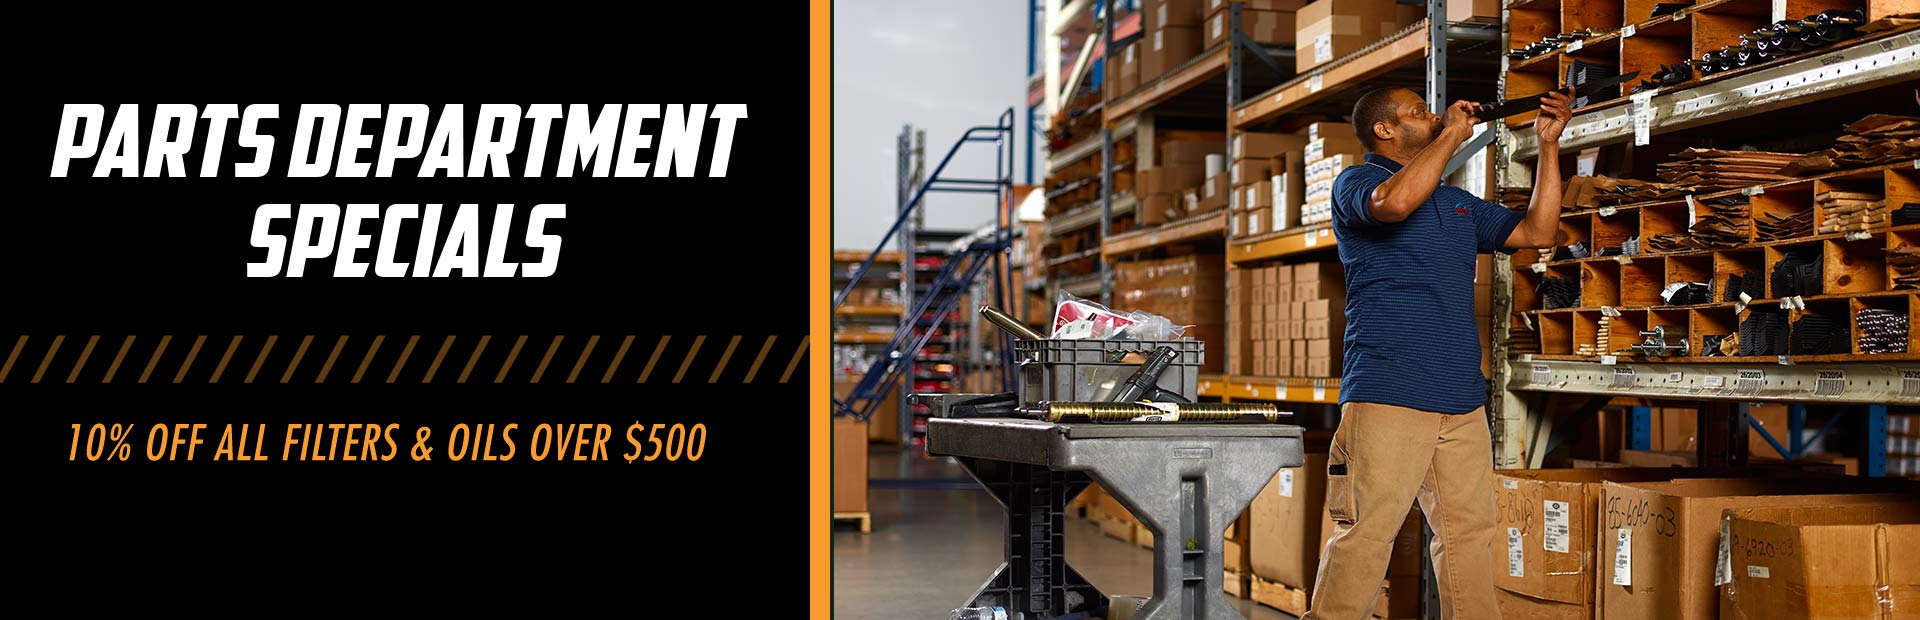 Parts Department Specials: 10% Off All Filters & Oils Over $500